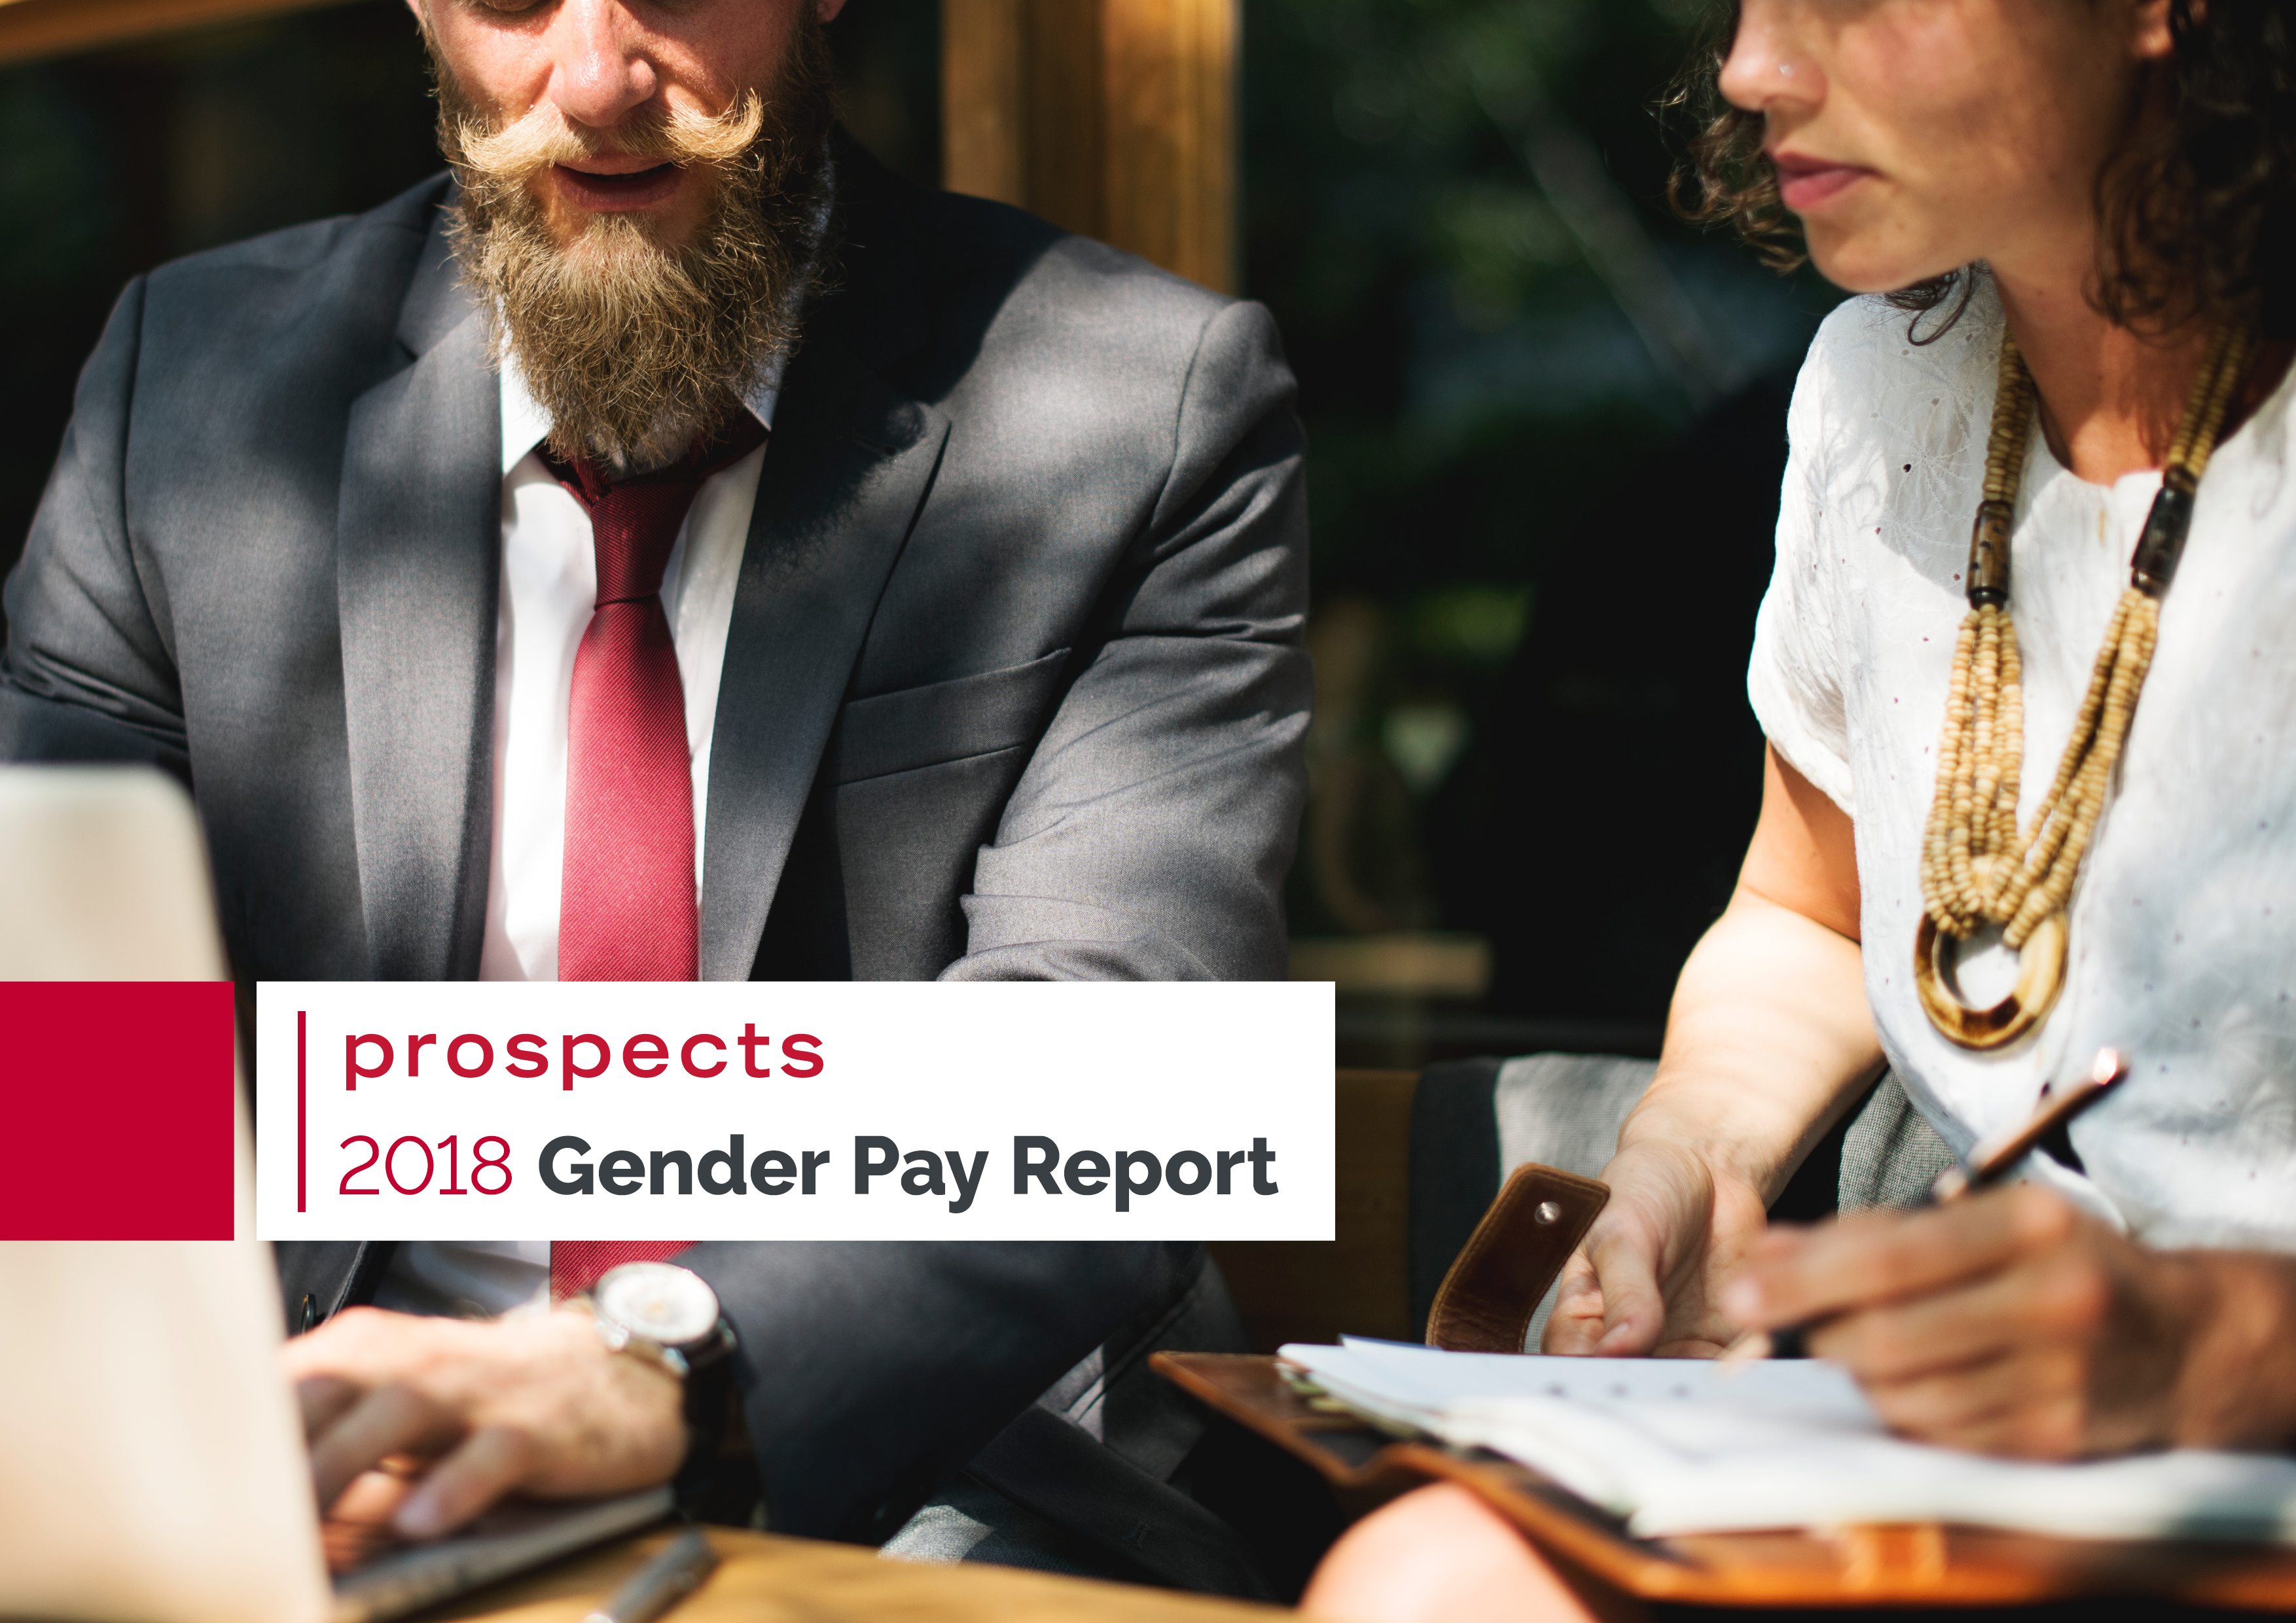 Prospects Gender Pay Report 2018